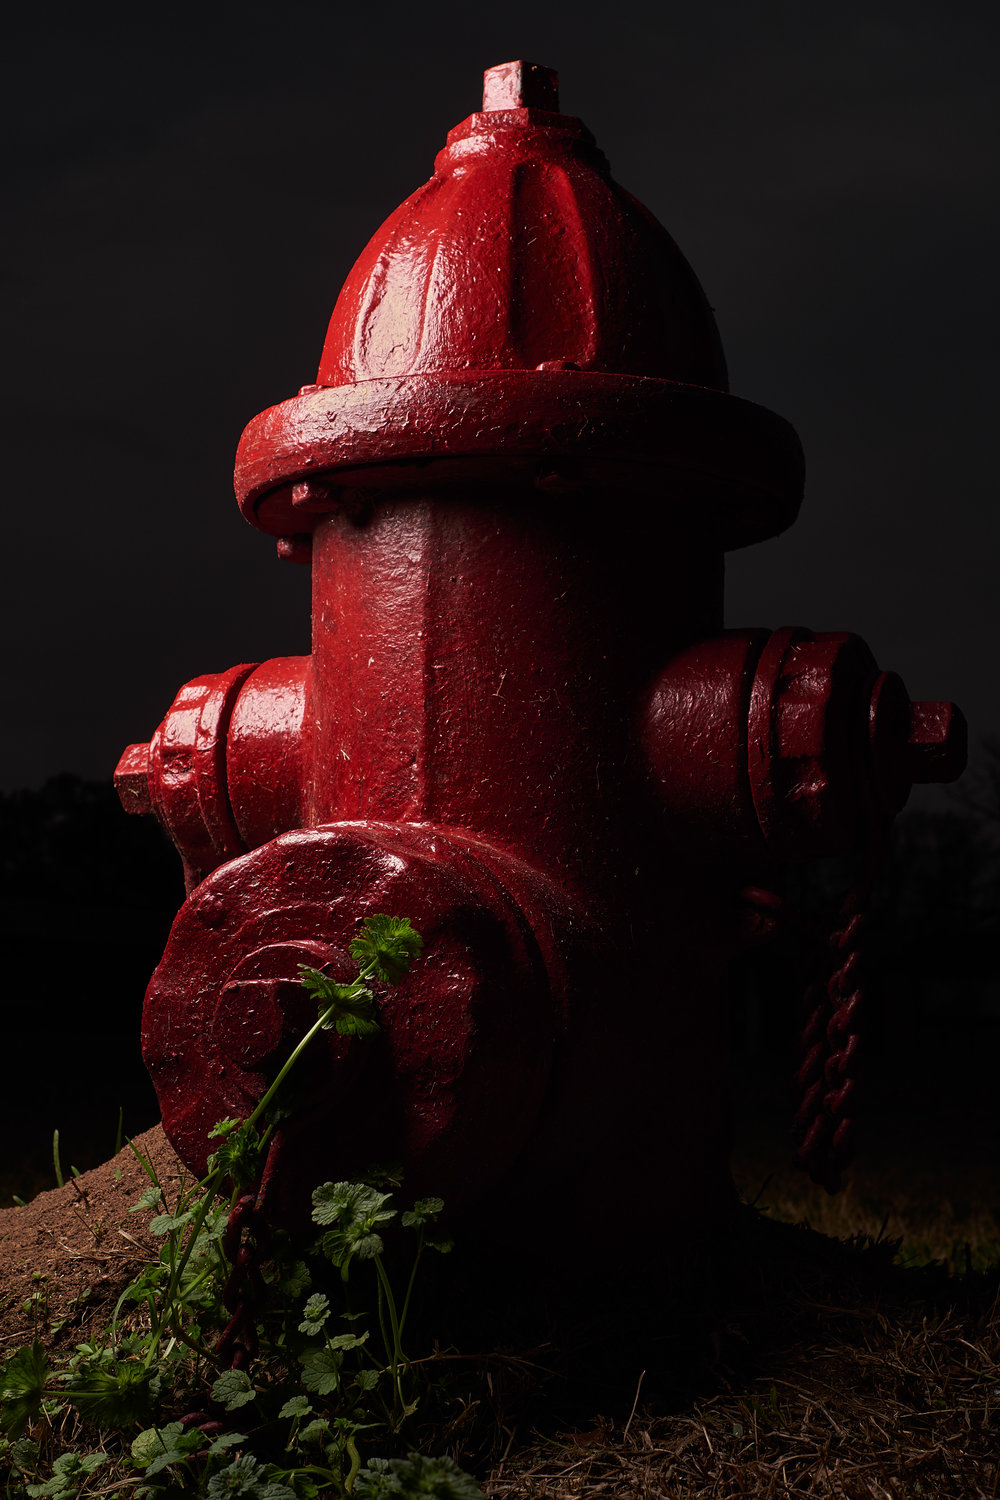 Hydrant Portrait #10